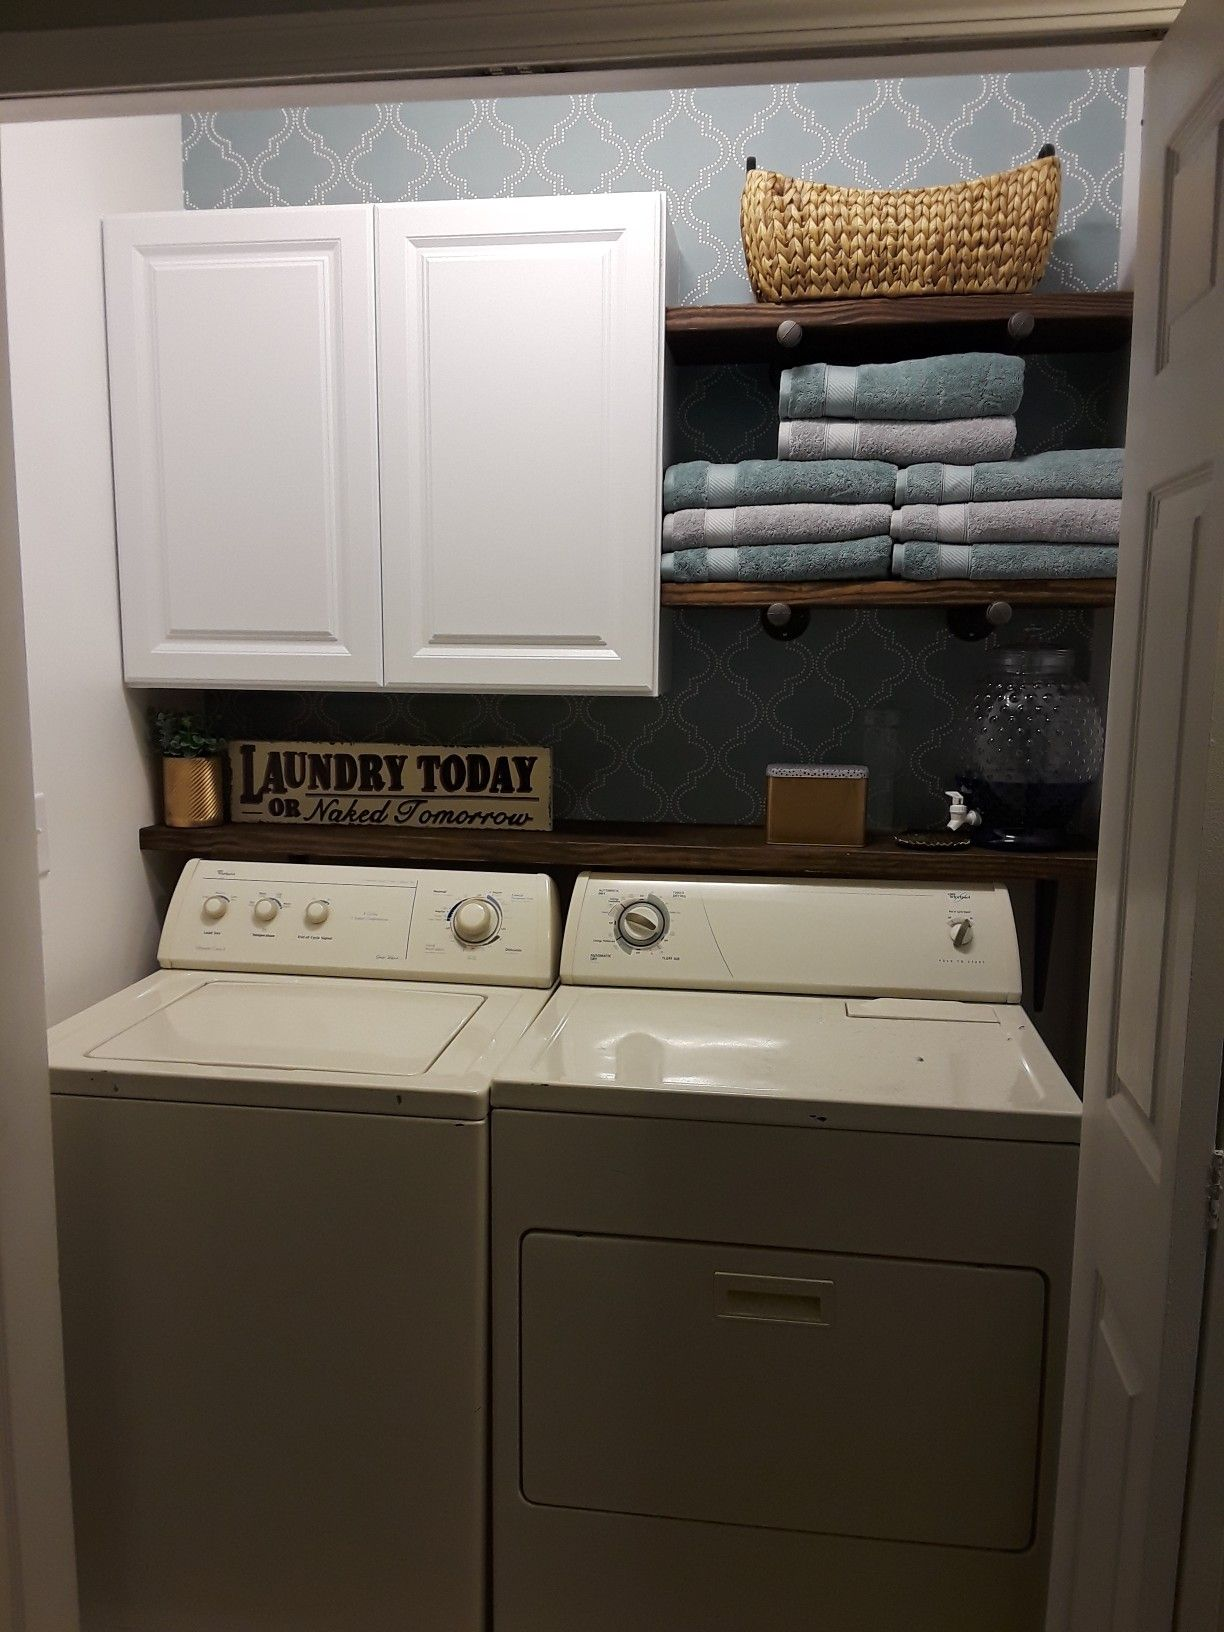 Pin By The Staging Girl On Laundry Room Ideas -